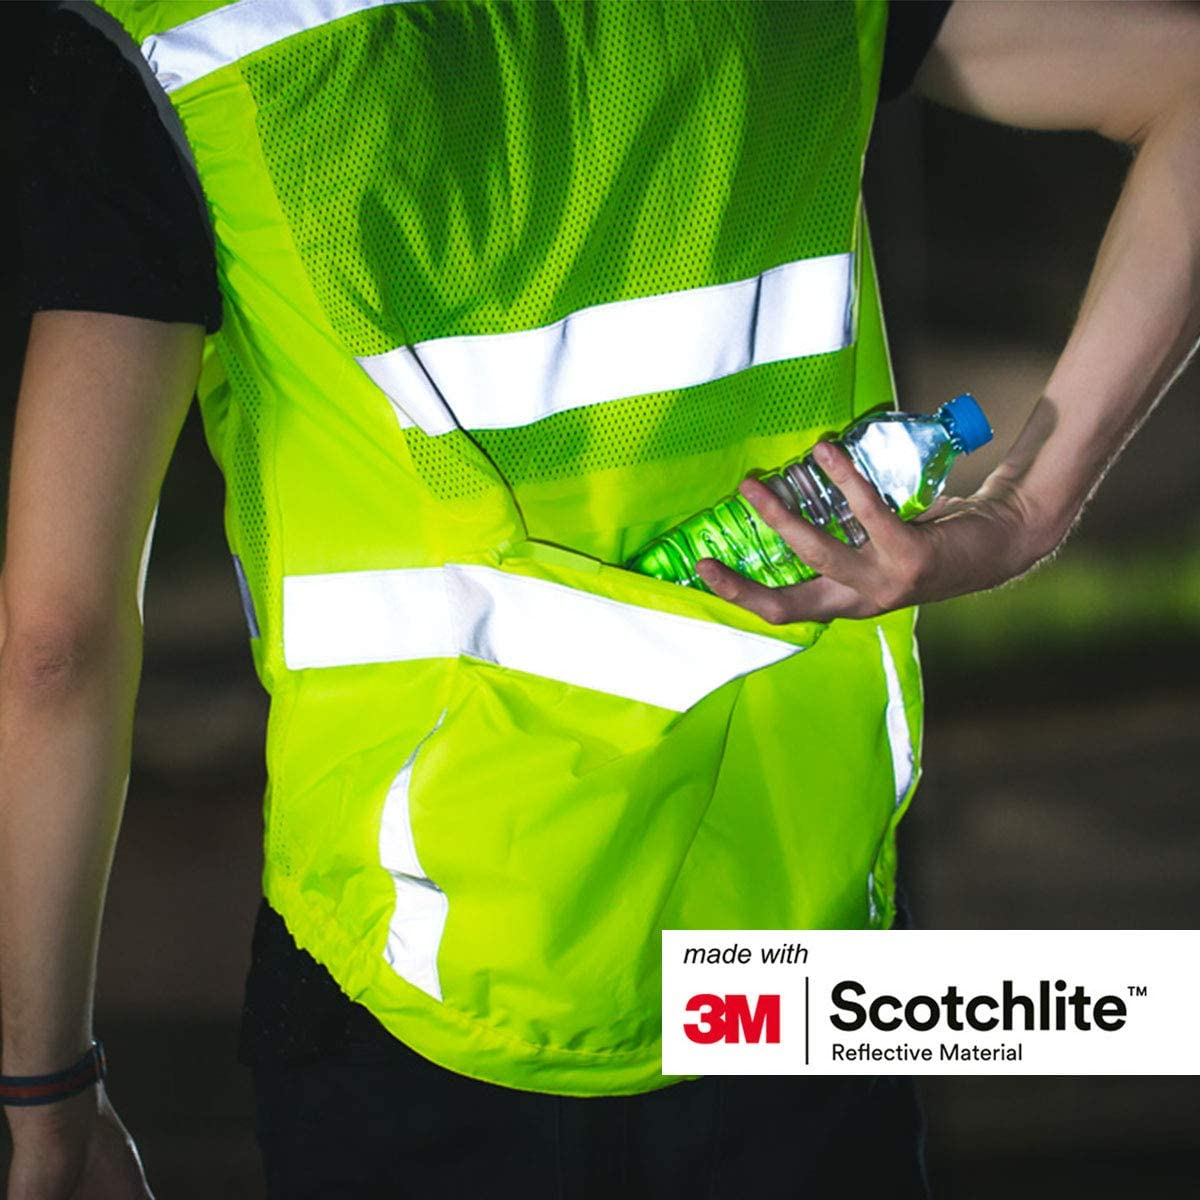 Salzmann 3M Reflective Vest High Visibility Cross Belt with Adjustable Straps Running and Other Outdoor Activities Made with 3M Scotchlite Ideal for Cycling